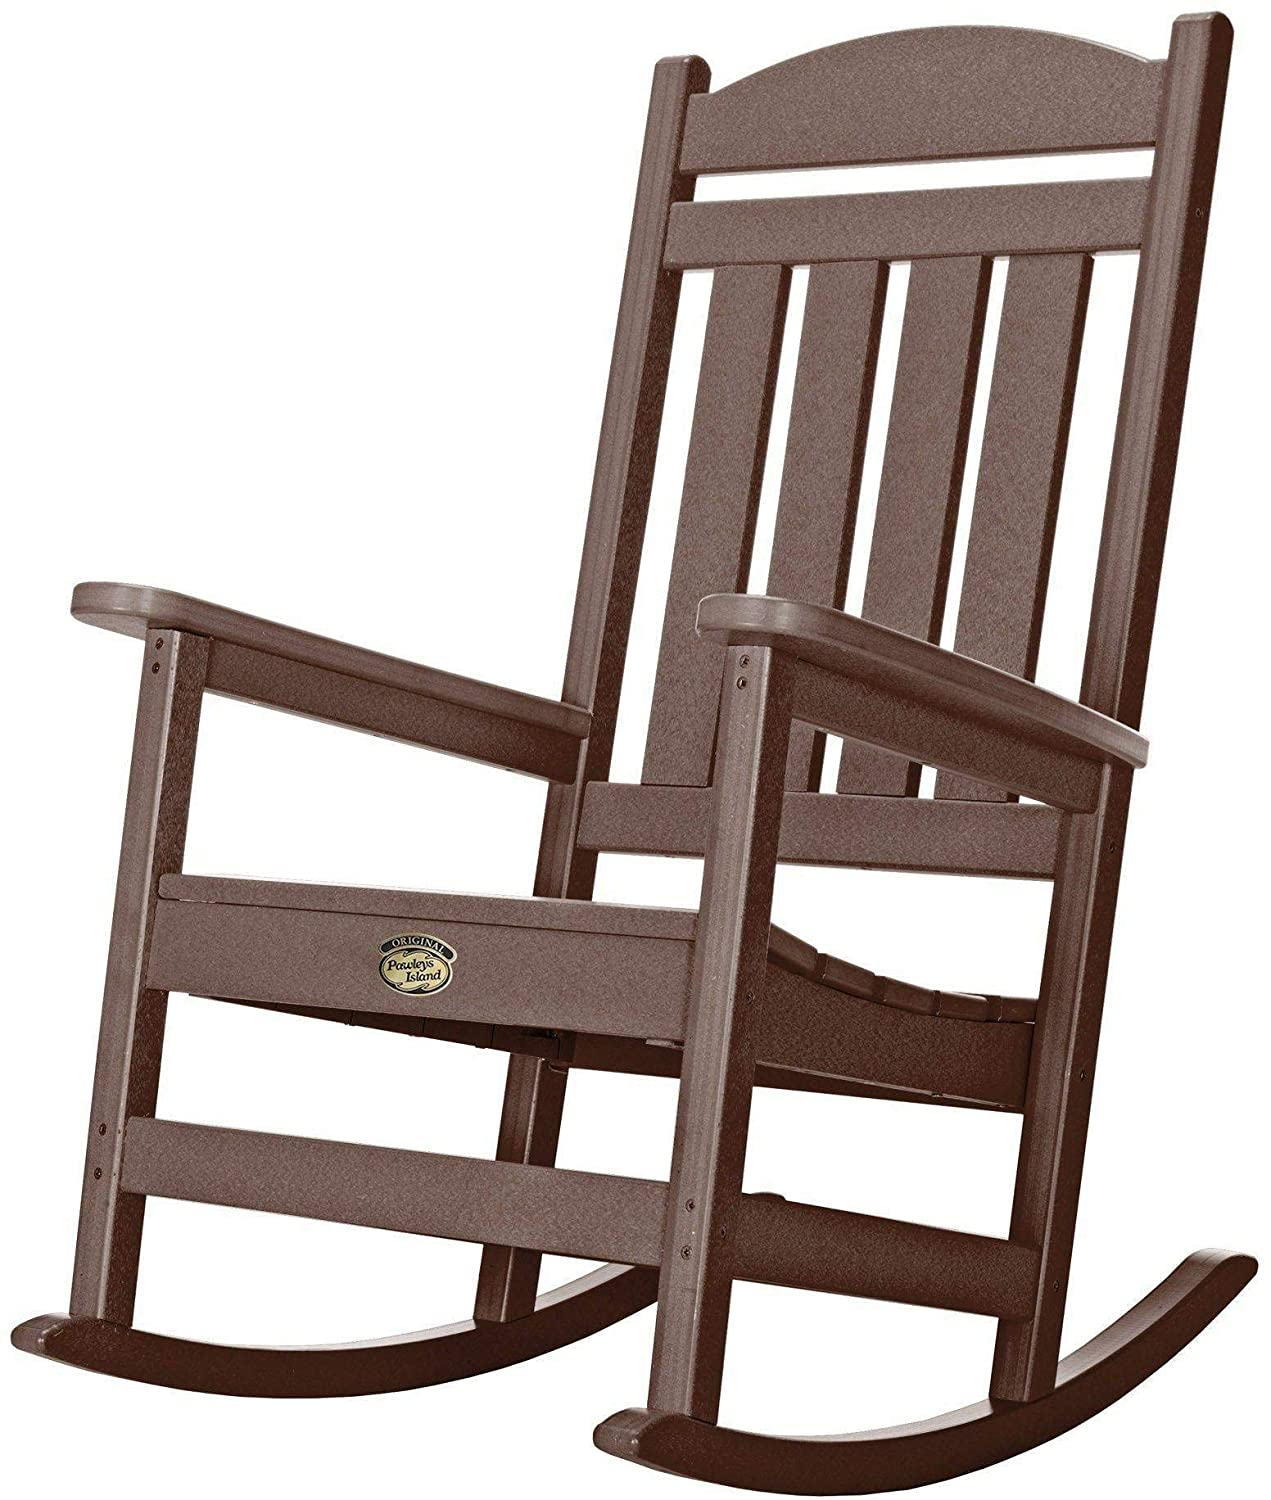 Pawleys Island Recycled Plastic Porch Rocking Chair